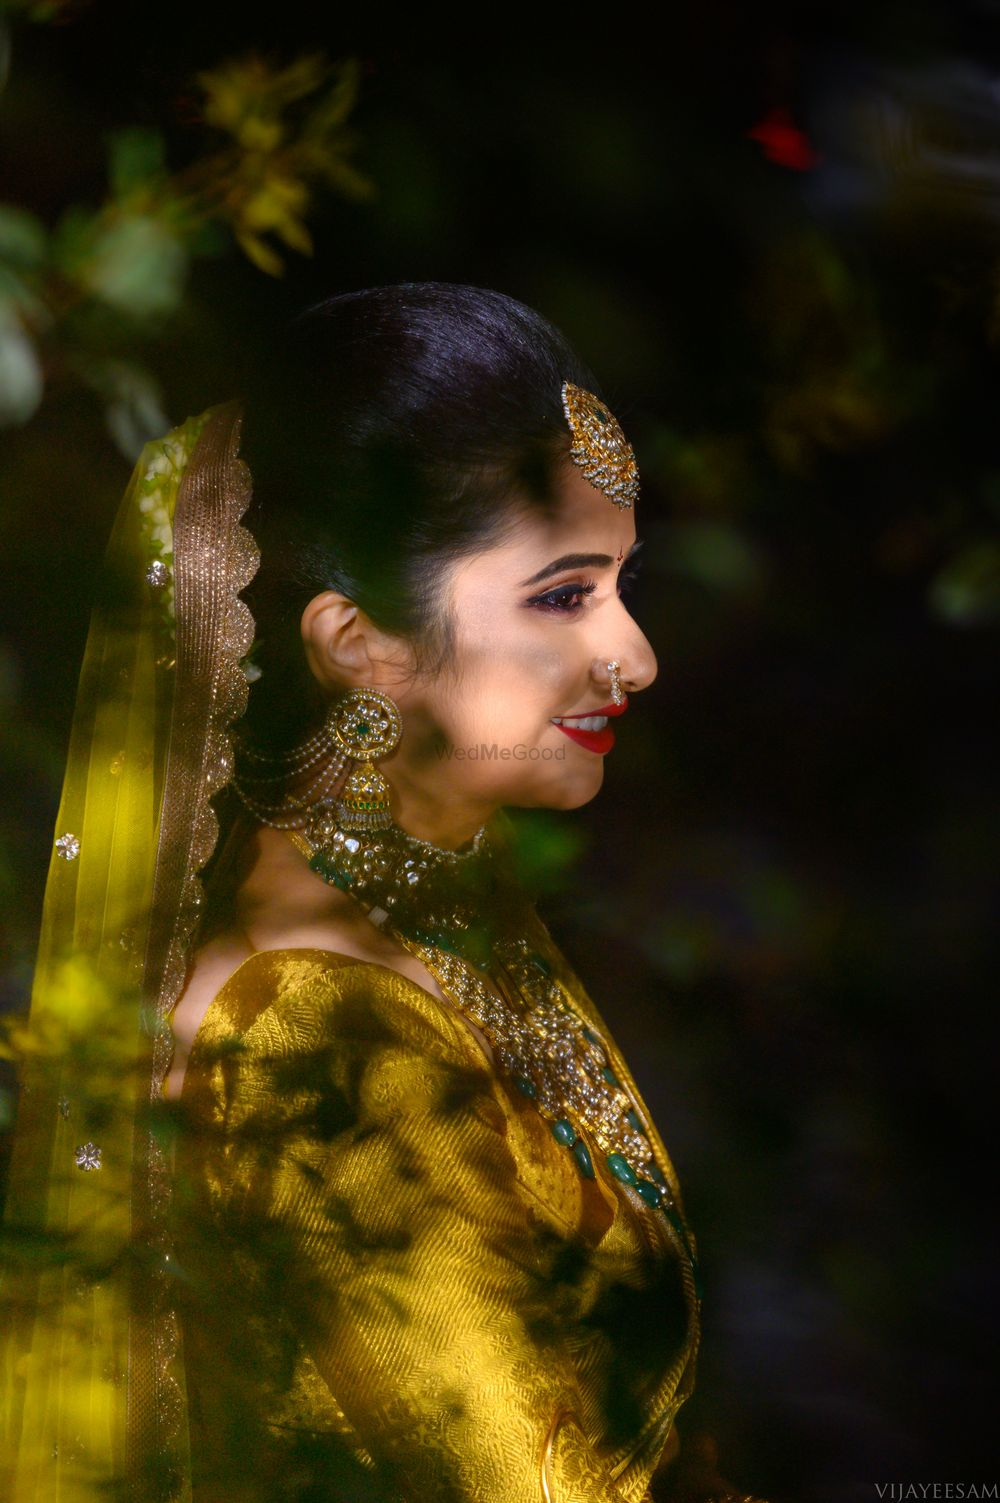 Photo From Manisha+Nithin - By Eesam & Co.